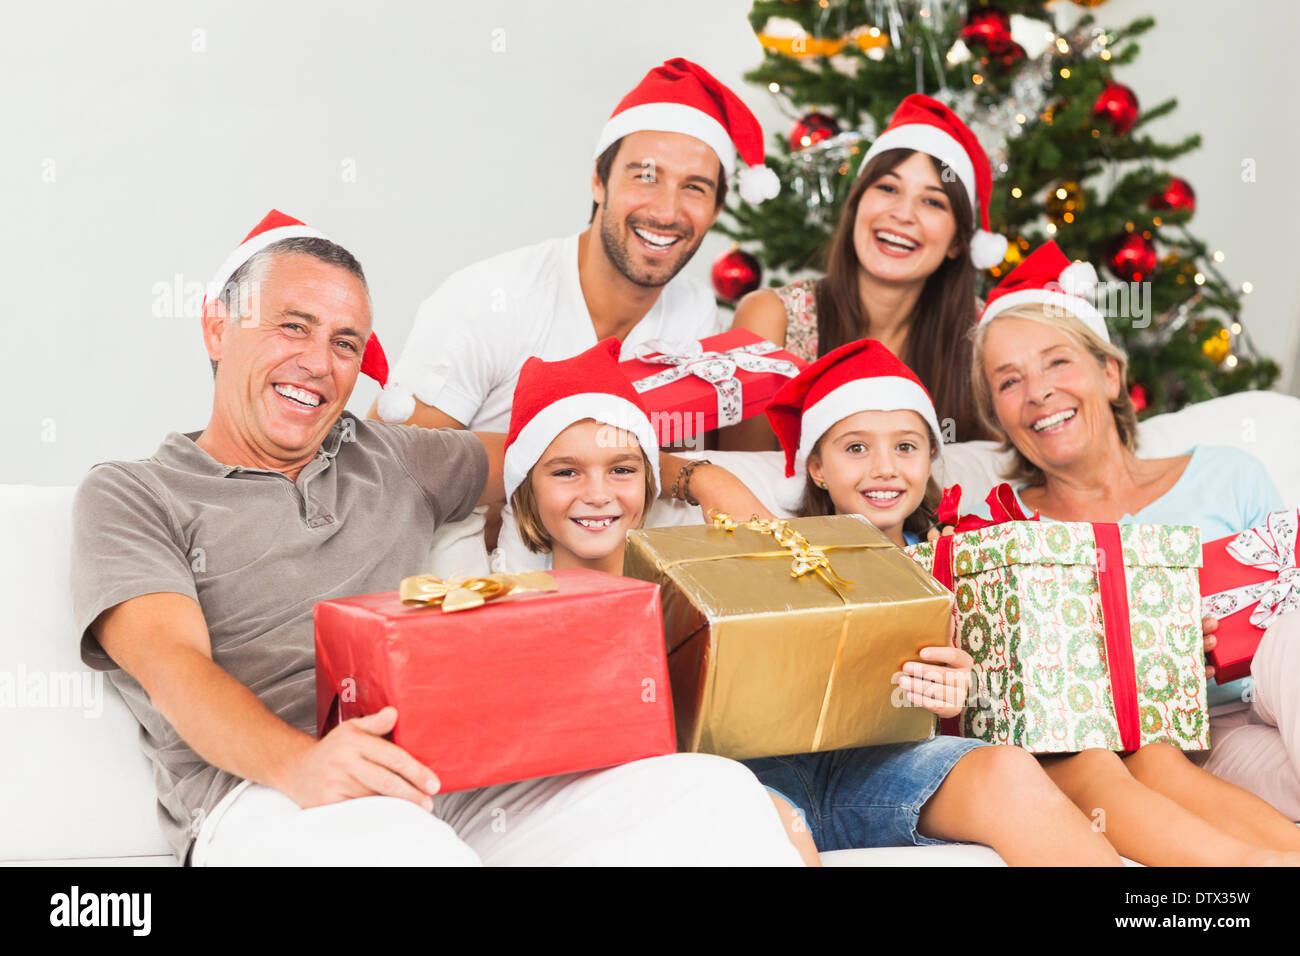 Happy family at christmas holding gifts - Stock Image